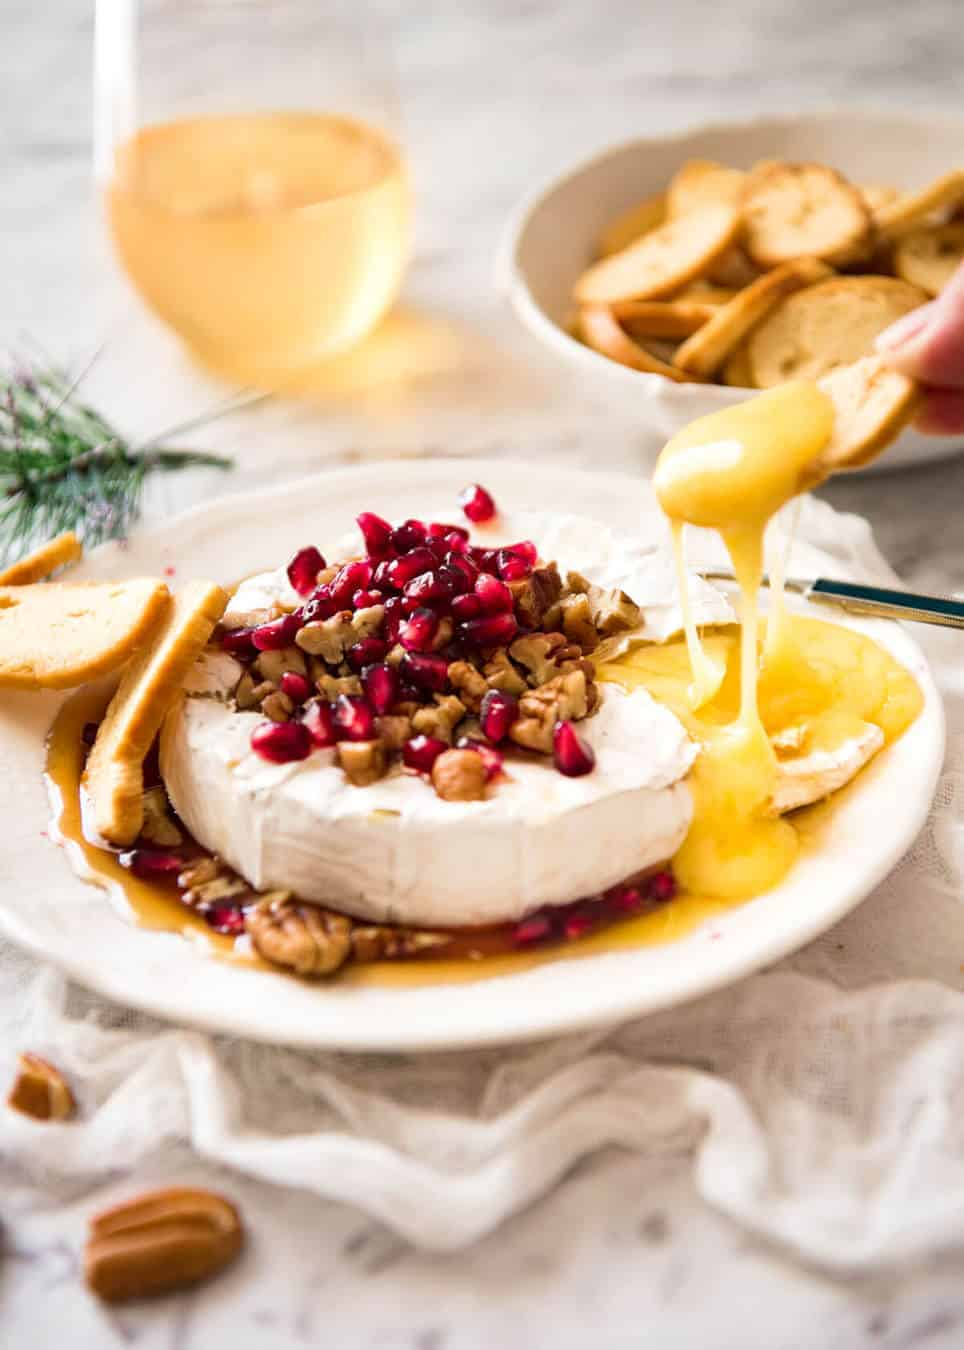 3 Minute Melty Festive Brie - Just microwave for 1 minute and you have an almost-instant baked brie appetizer! coral-beachresortsharjah.com